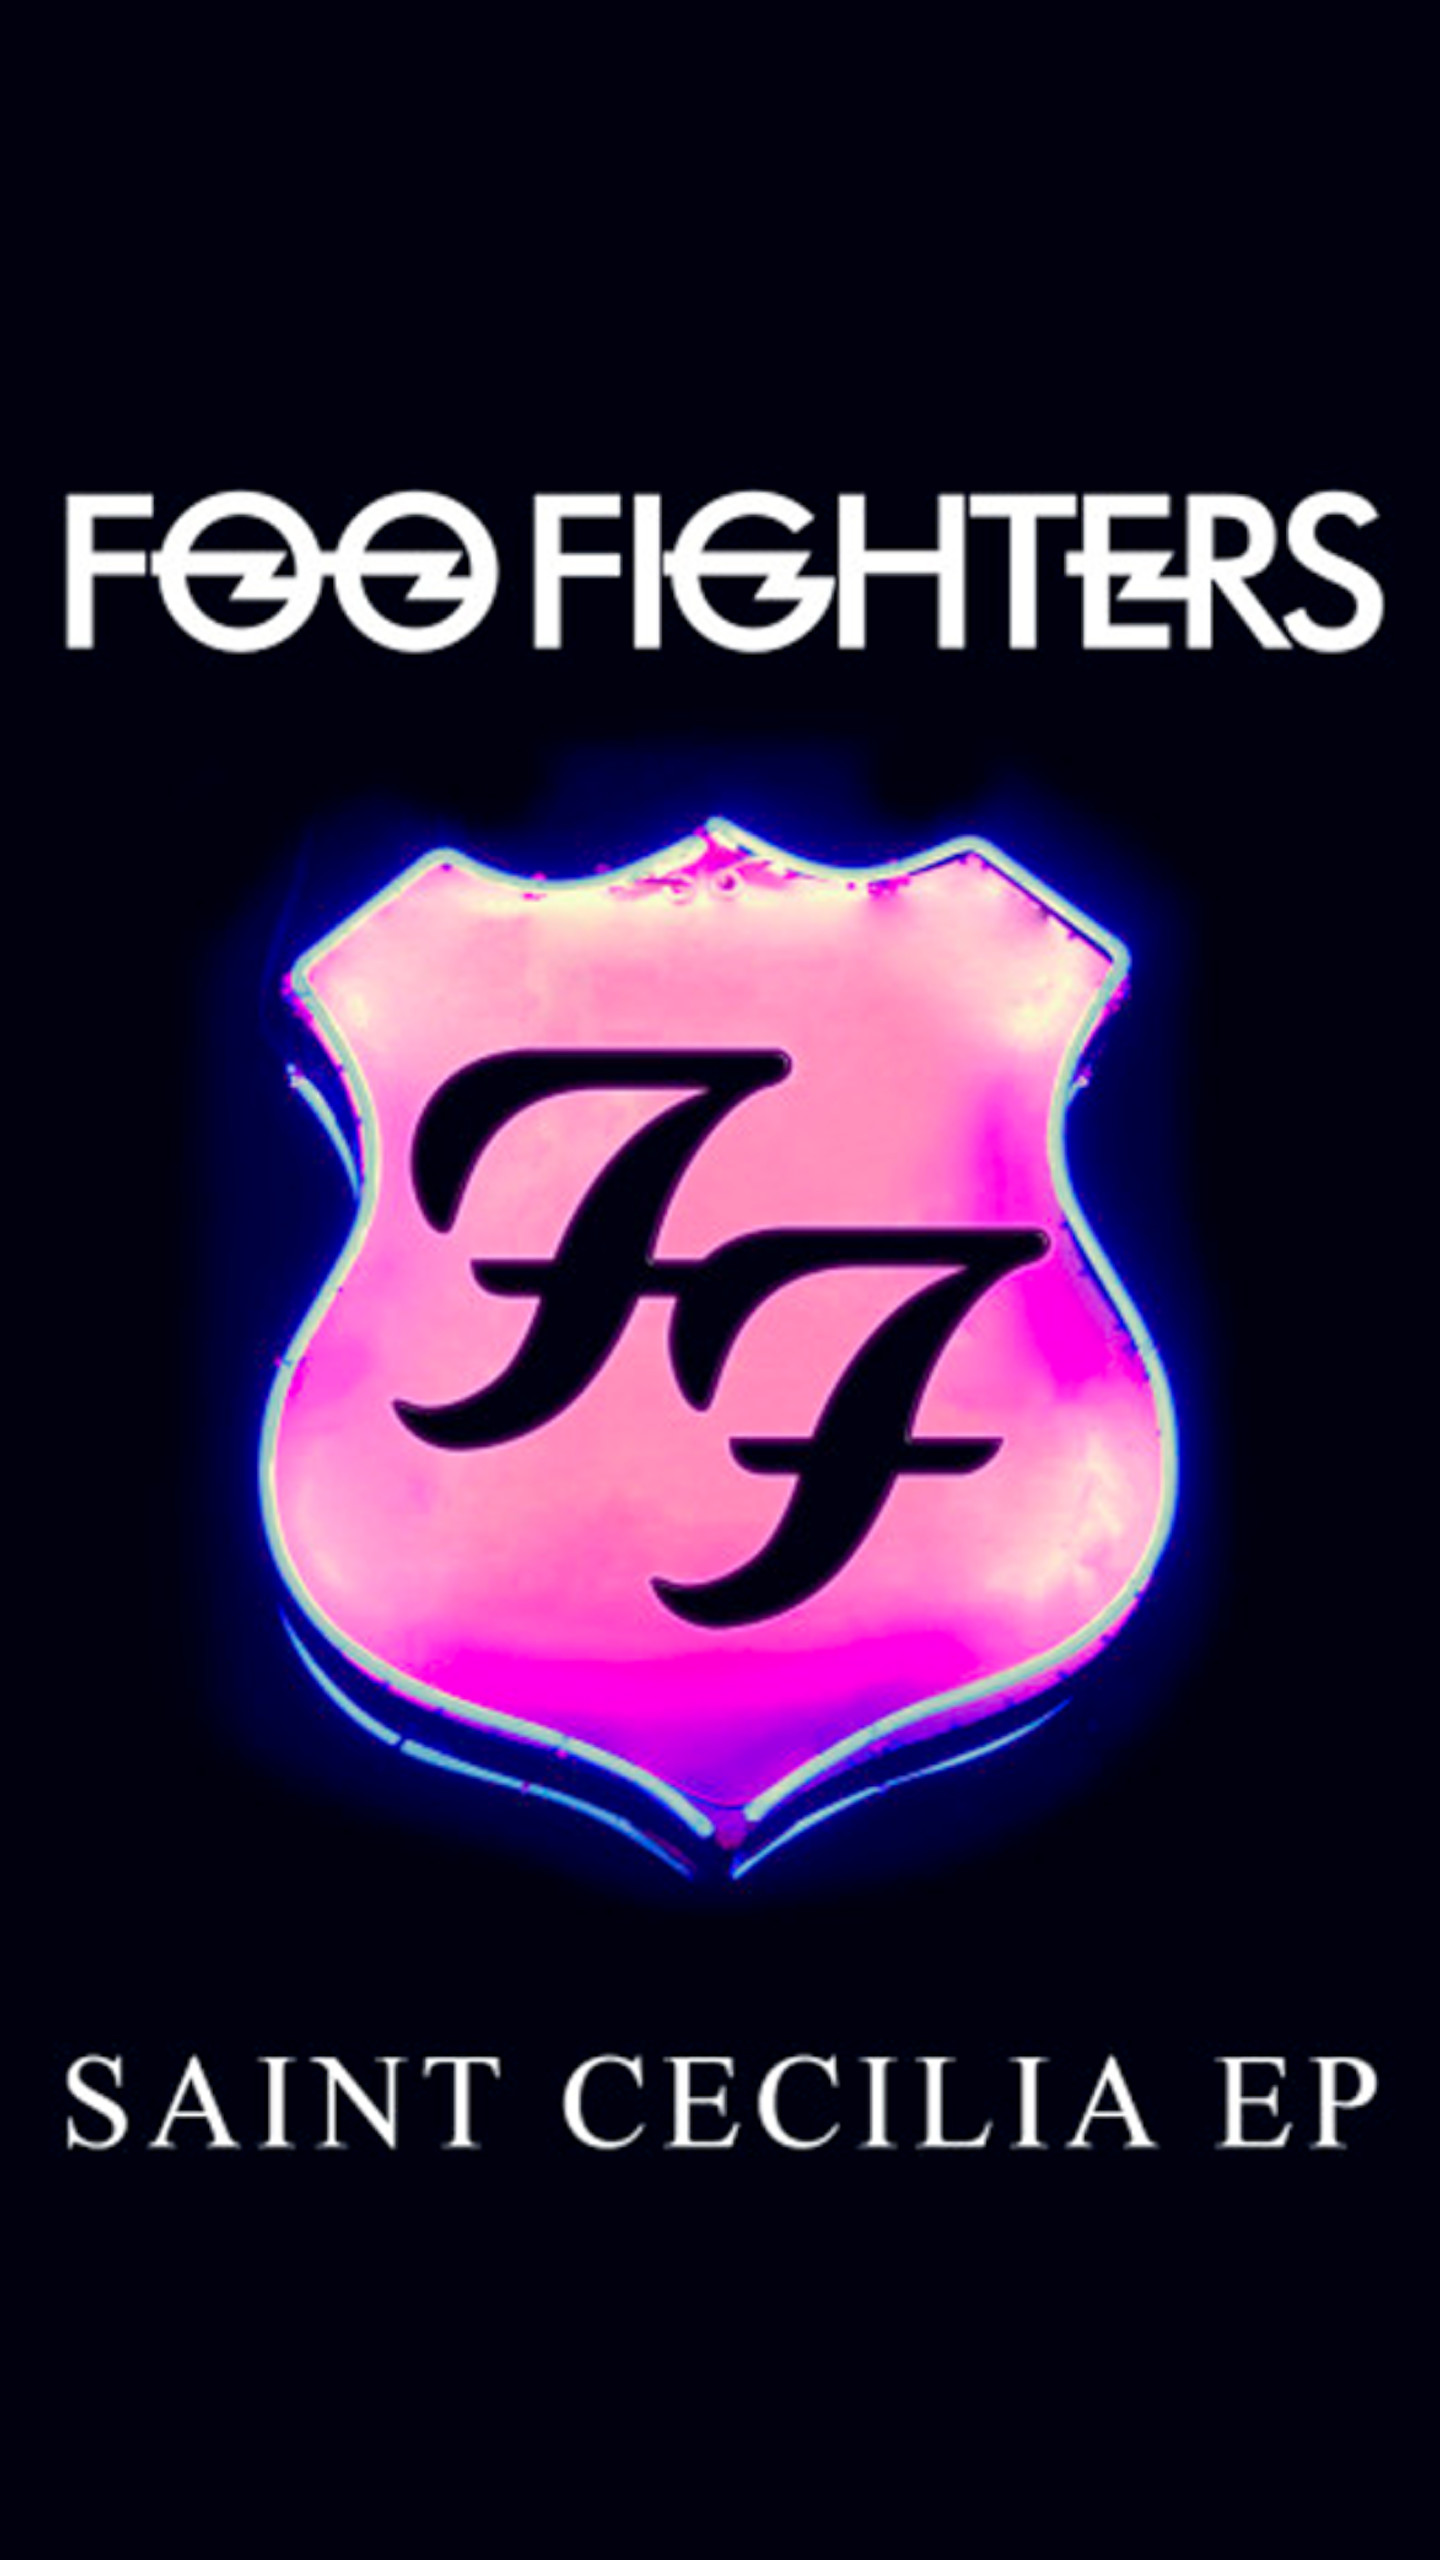 Inspirational Quotes Hd Wallpapers Free Download Foo Fighters Wallpapers 76 Images